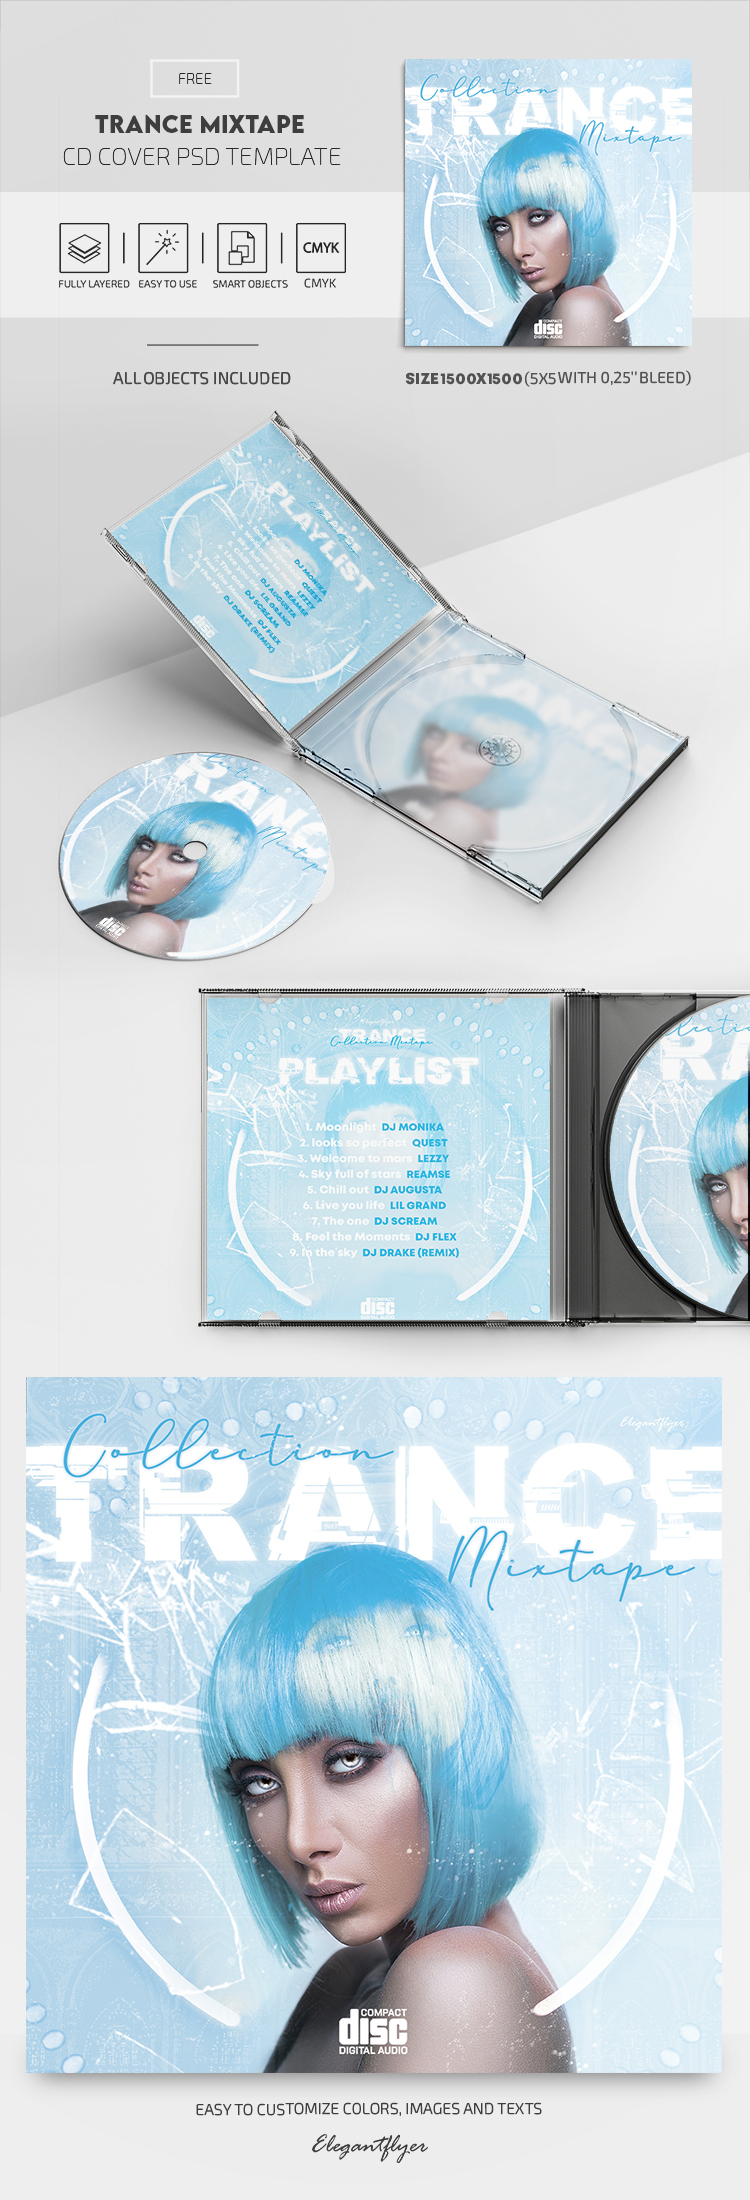 Trance Mixtape – Free CD Cover PSD Template